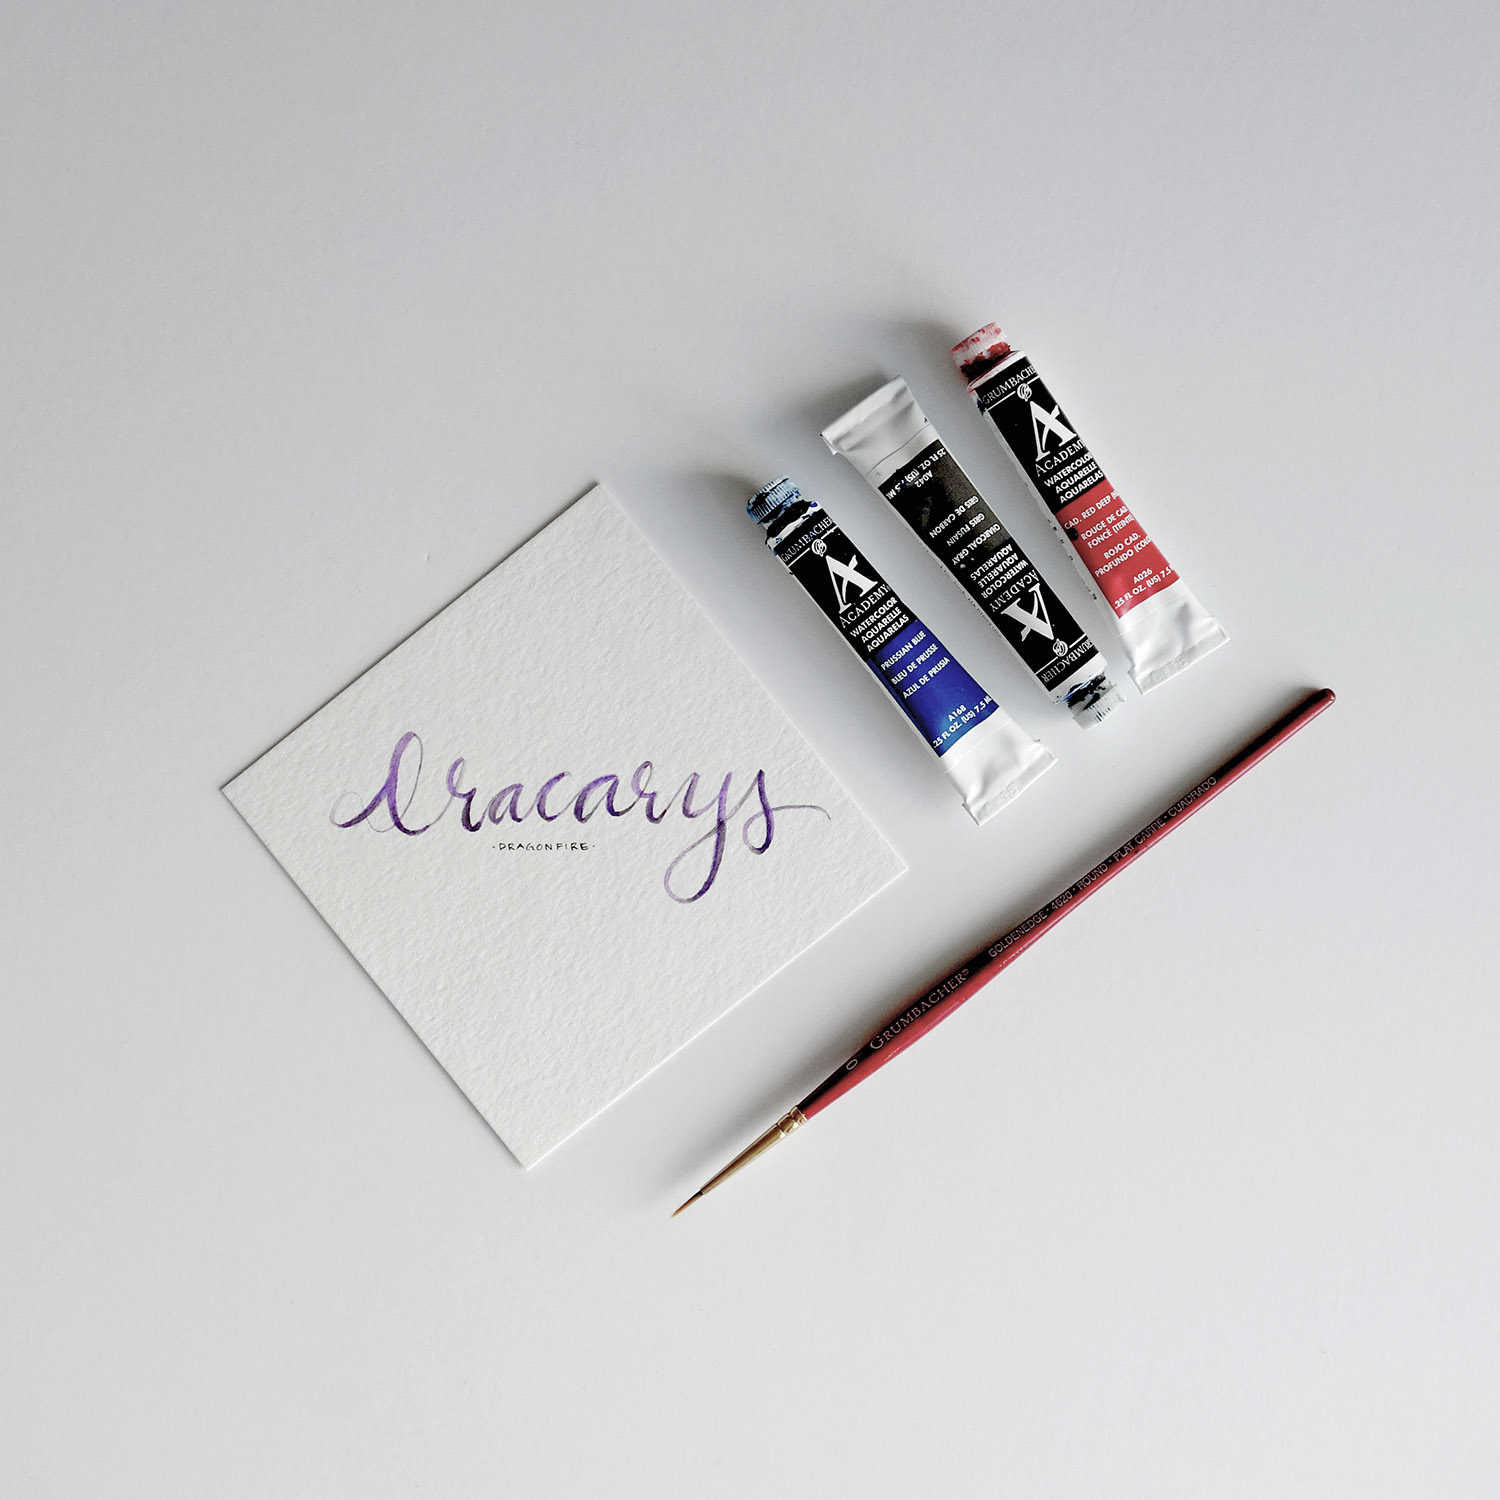 The shorter your messages are, the more likely we paint with gradients and get creative with brush lettering.